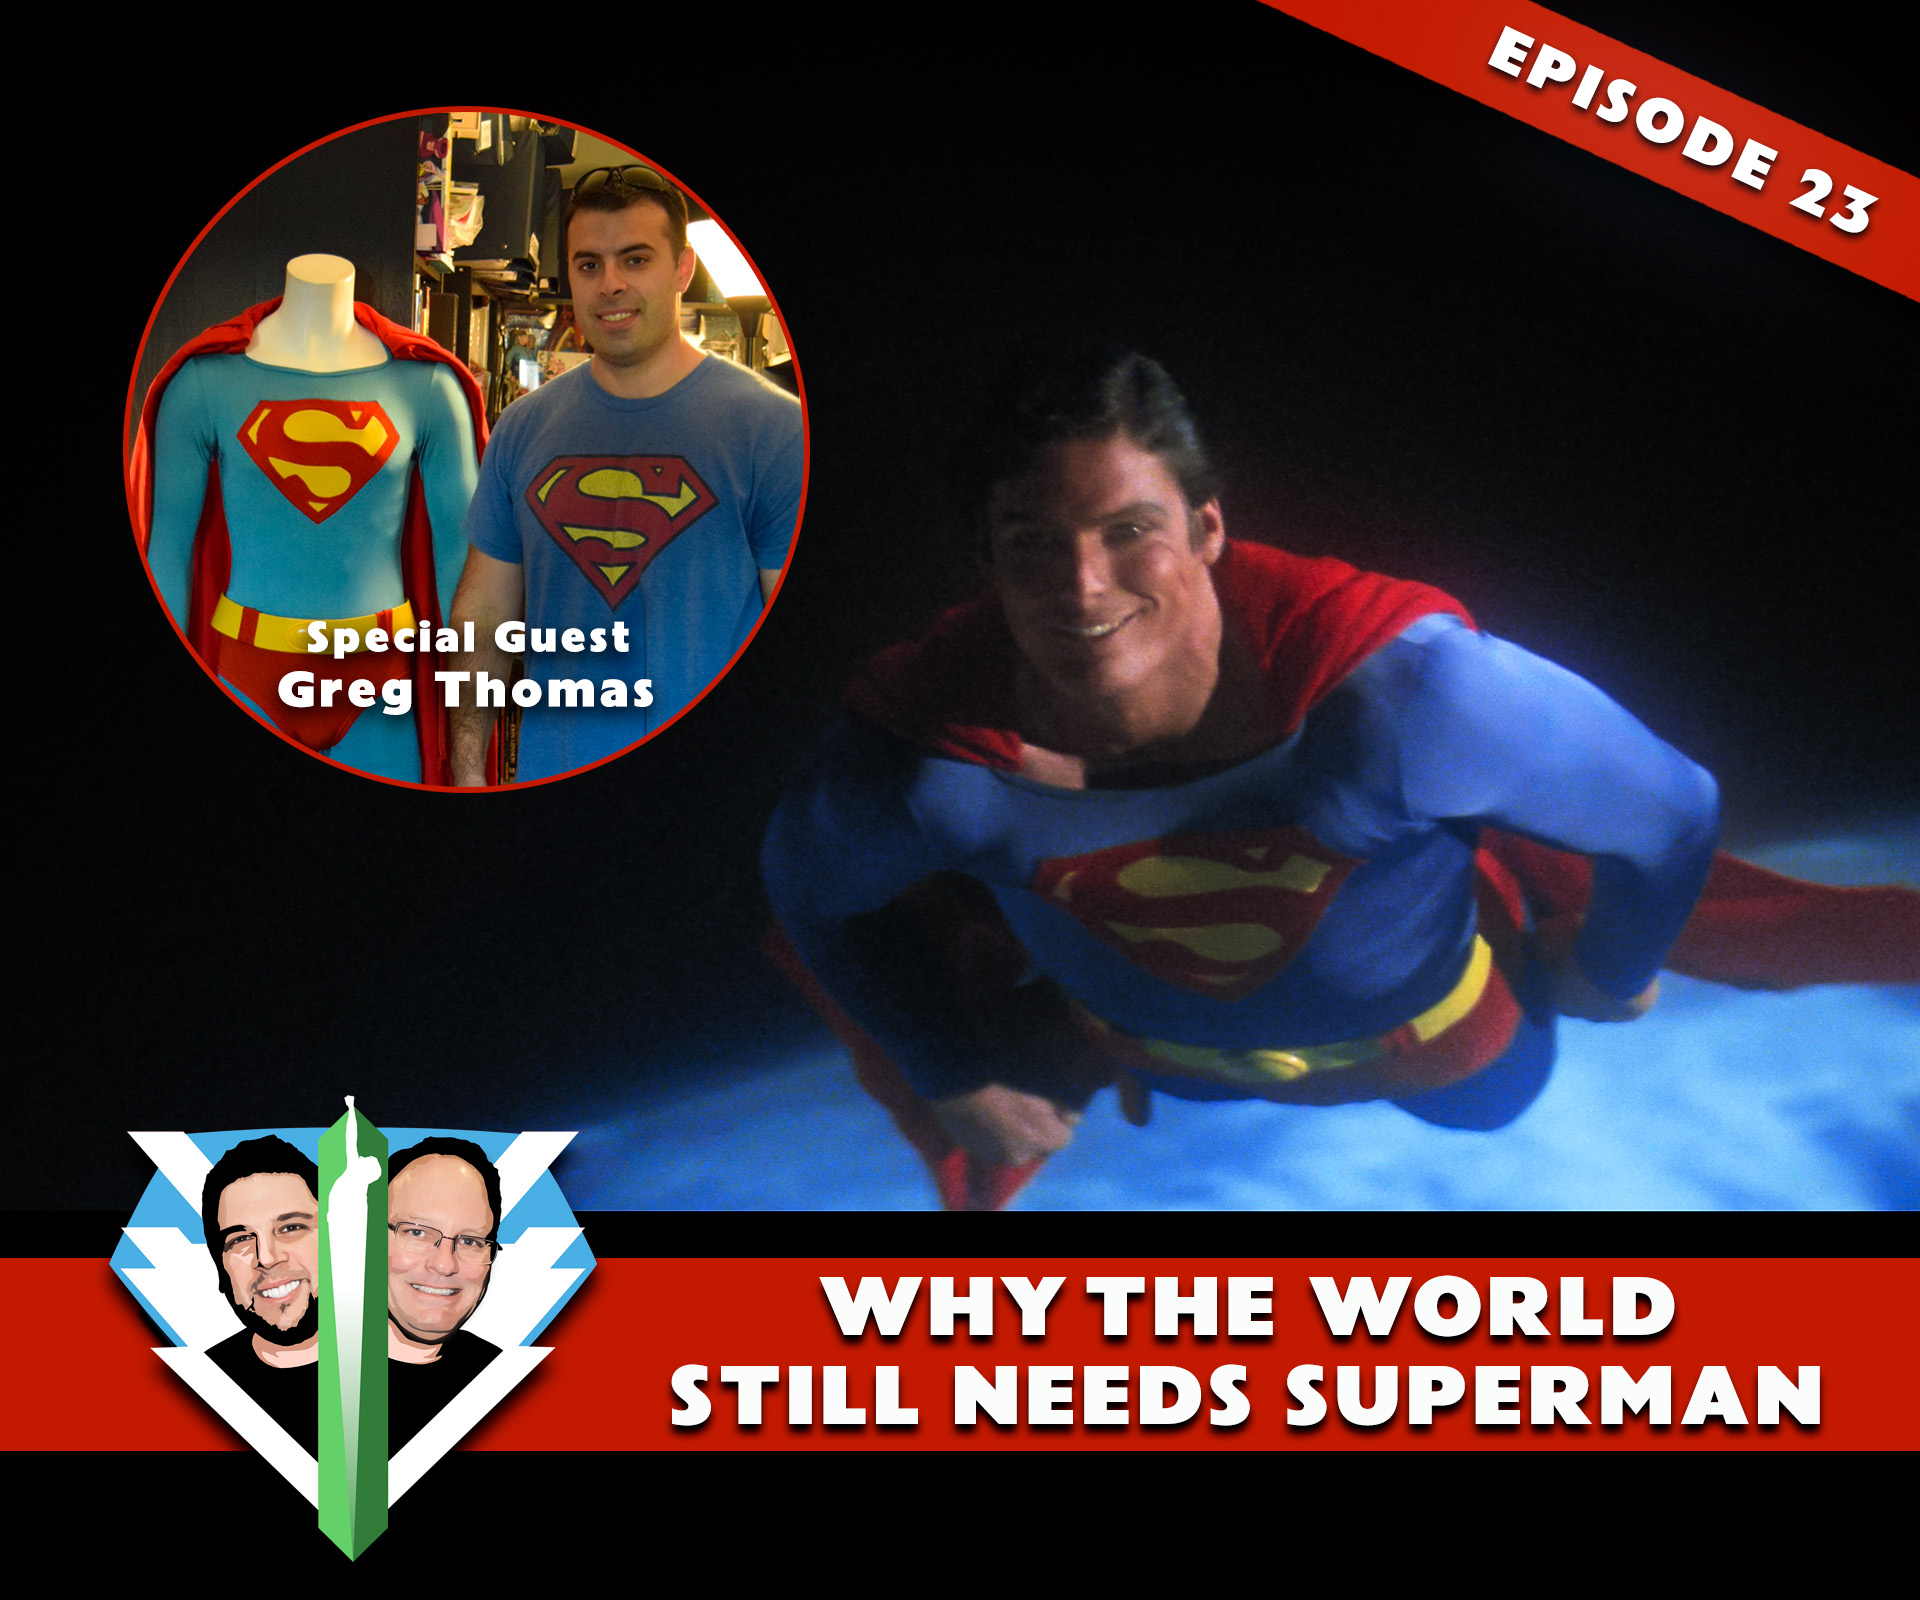 Caped Wonder Superman Podcast Episode 23!